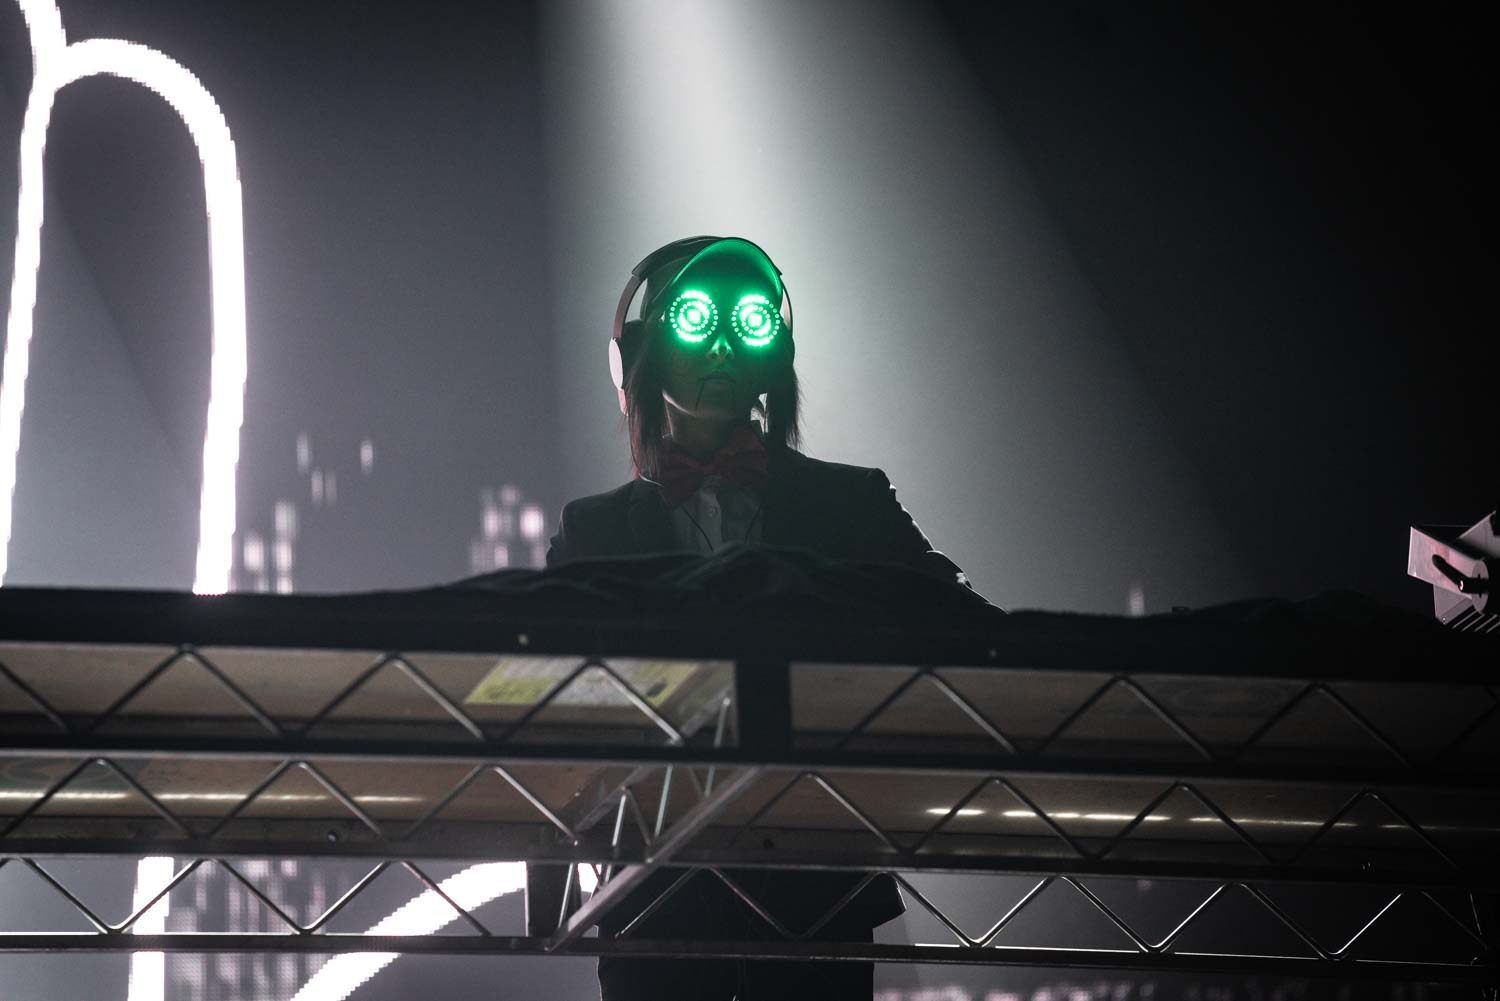 Rezz Armory Halloween Beyond The Senses Minneapolis Minnesota Tour Lights Lasers Live Concert Review Music DJ